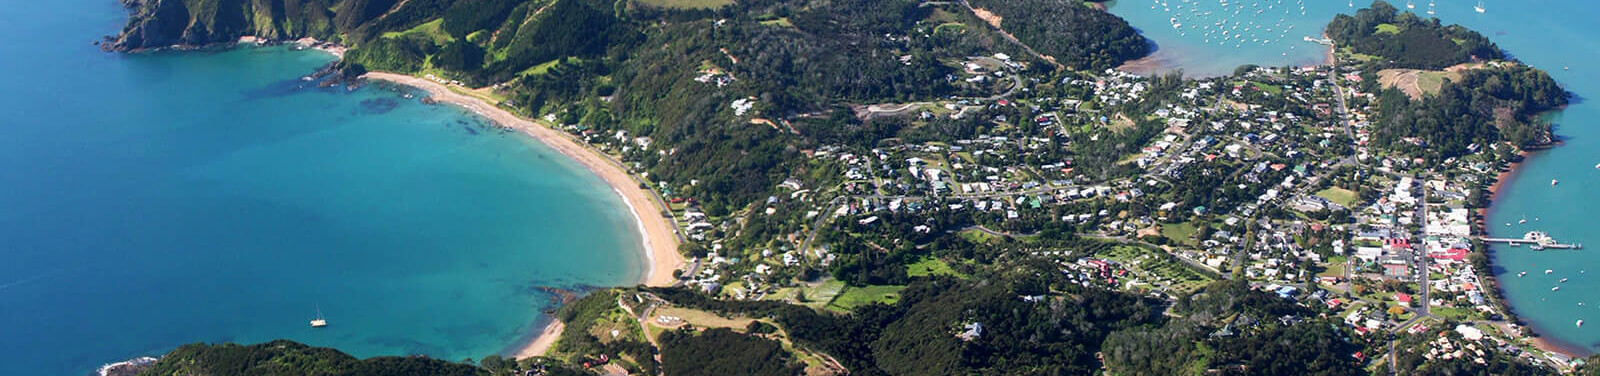 Aerial view of Russell, Bay of Islands